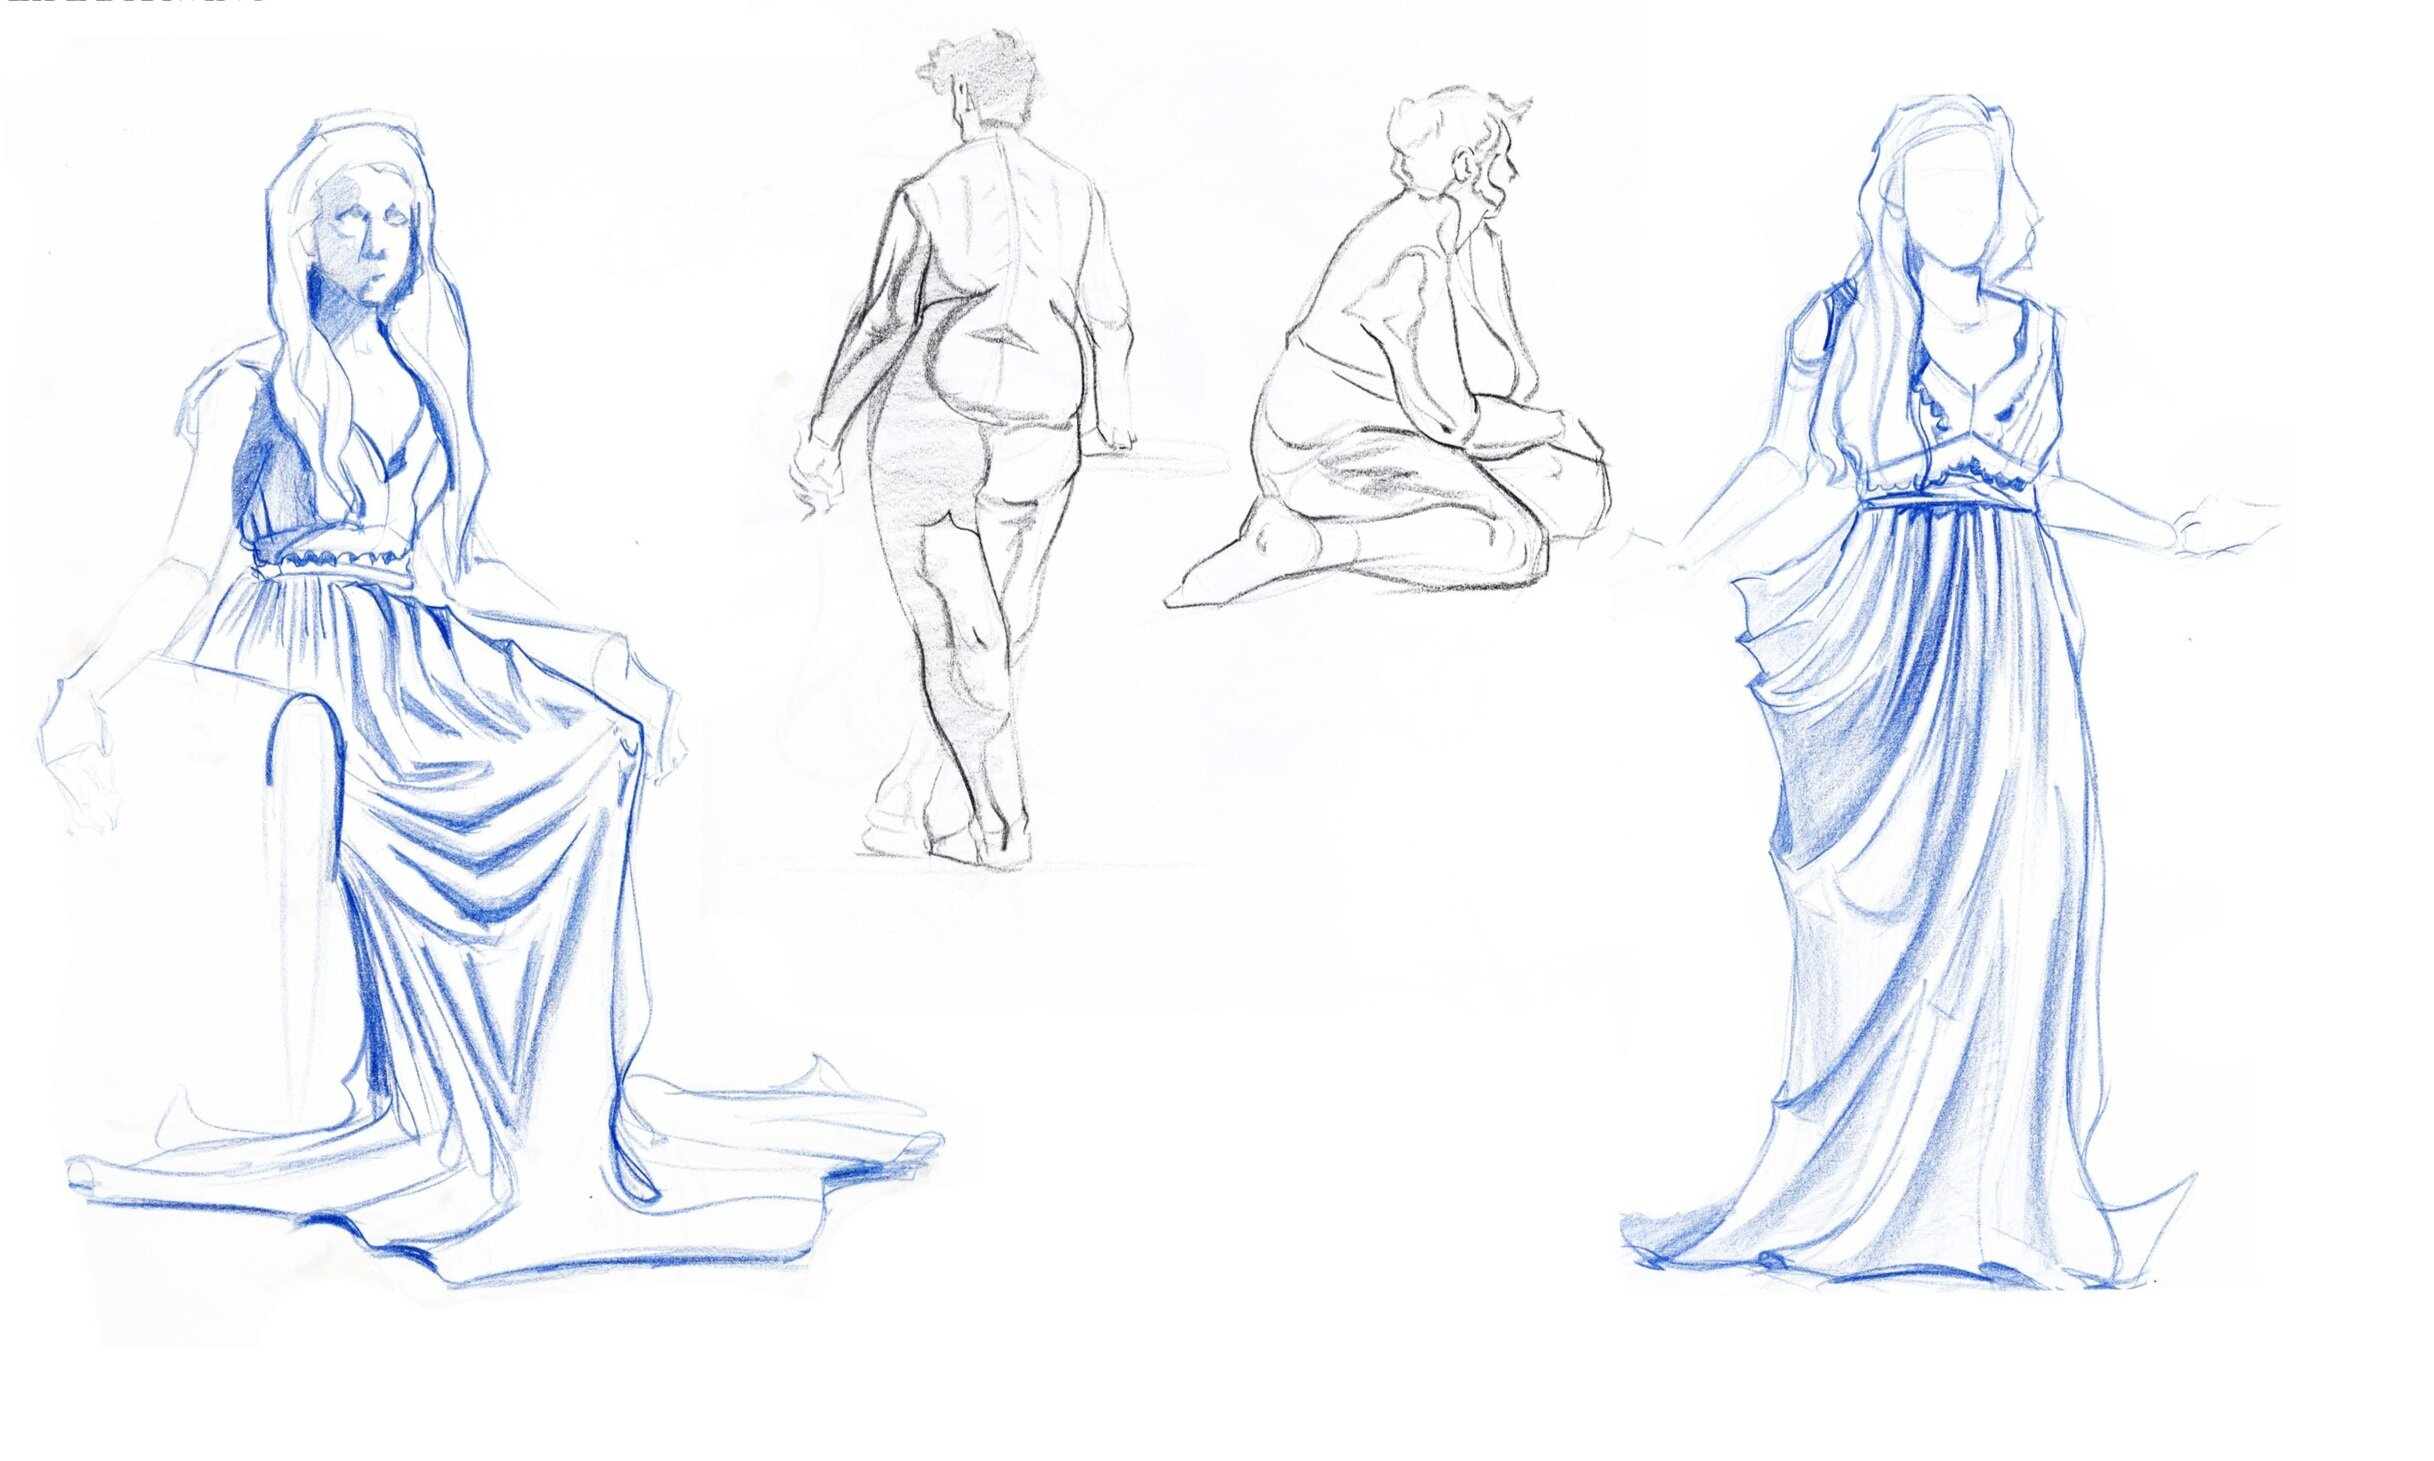 lifedrawing2.jpg